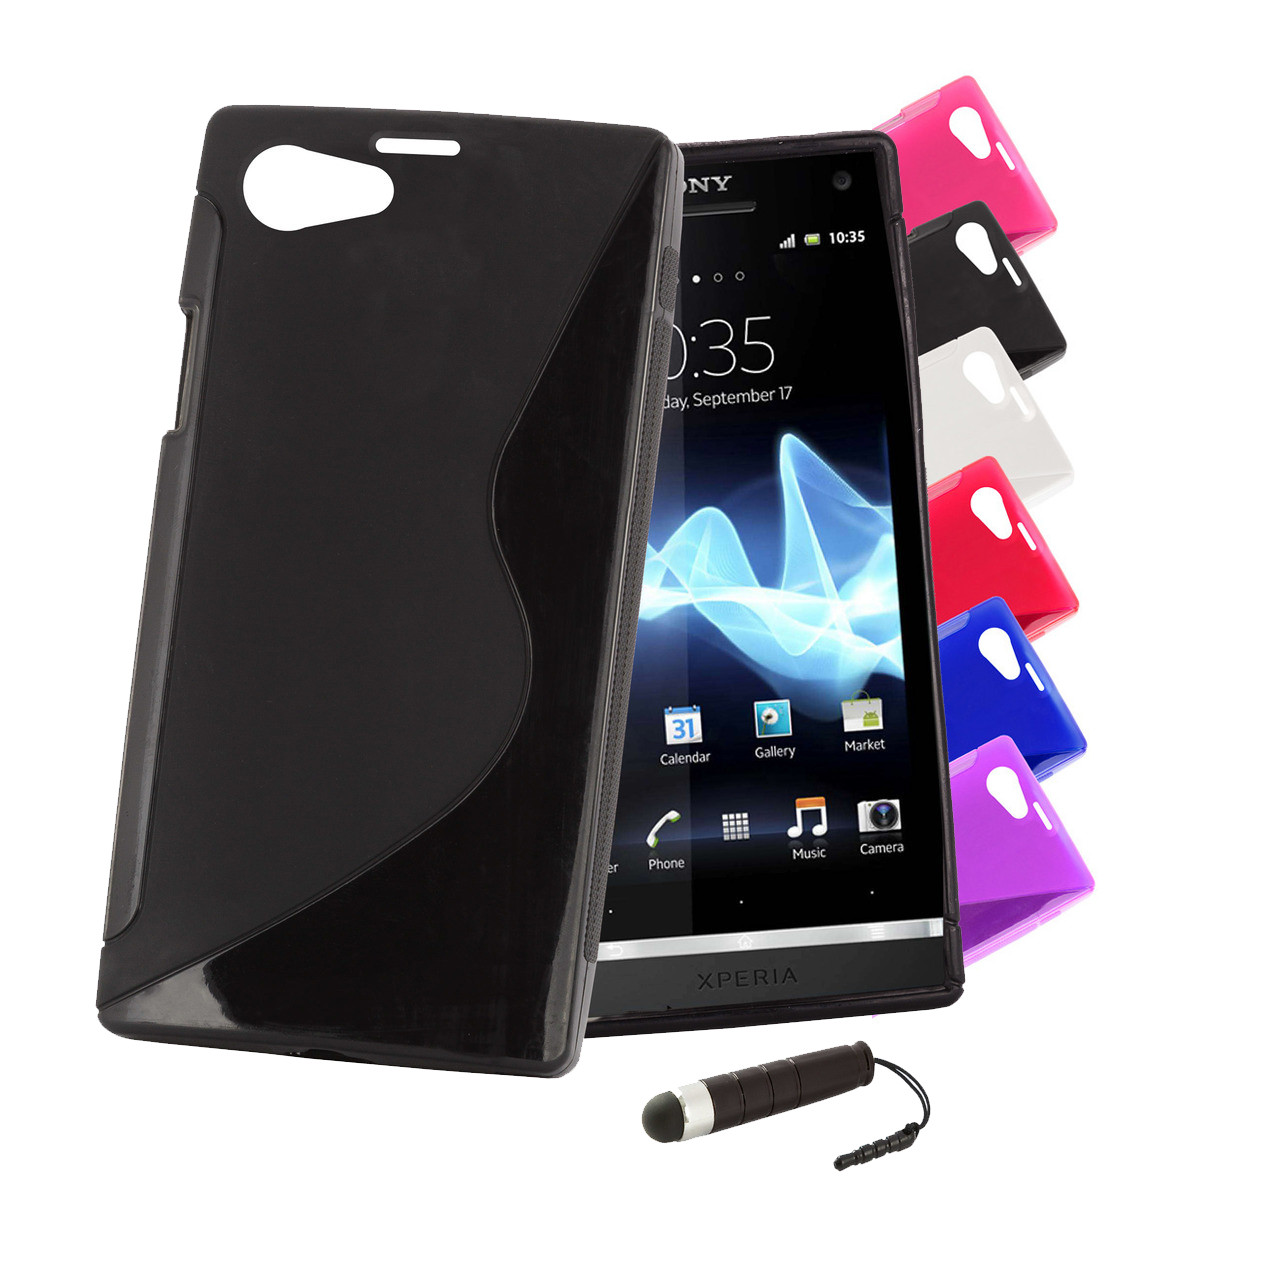 separation shoes 969ee 812fc Sony Xperia Z1 Compact S-Line Gel Case